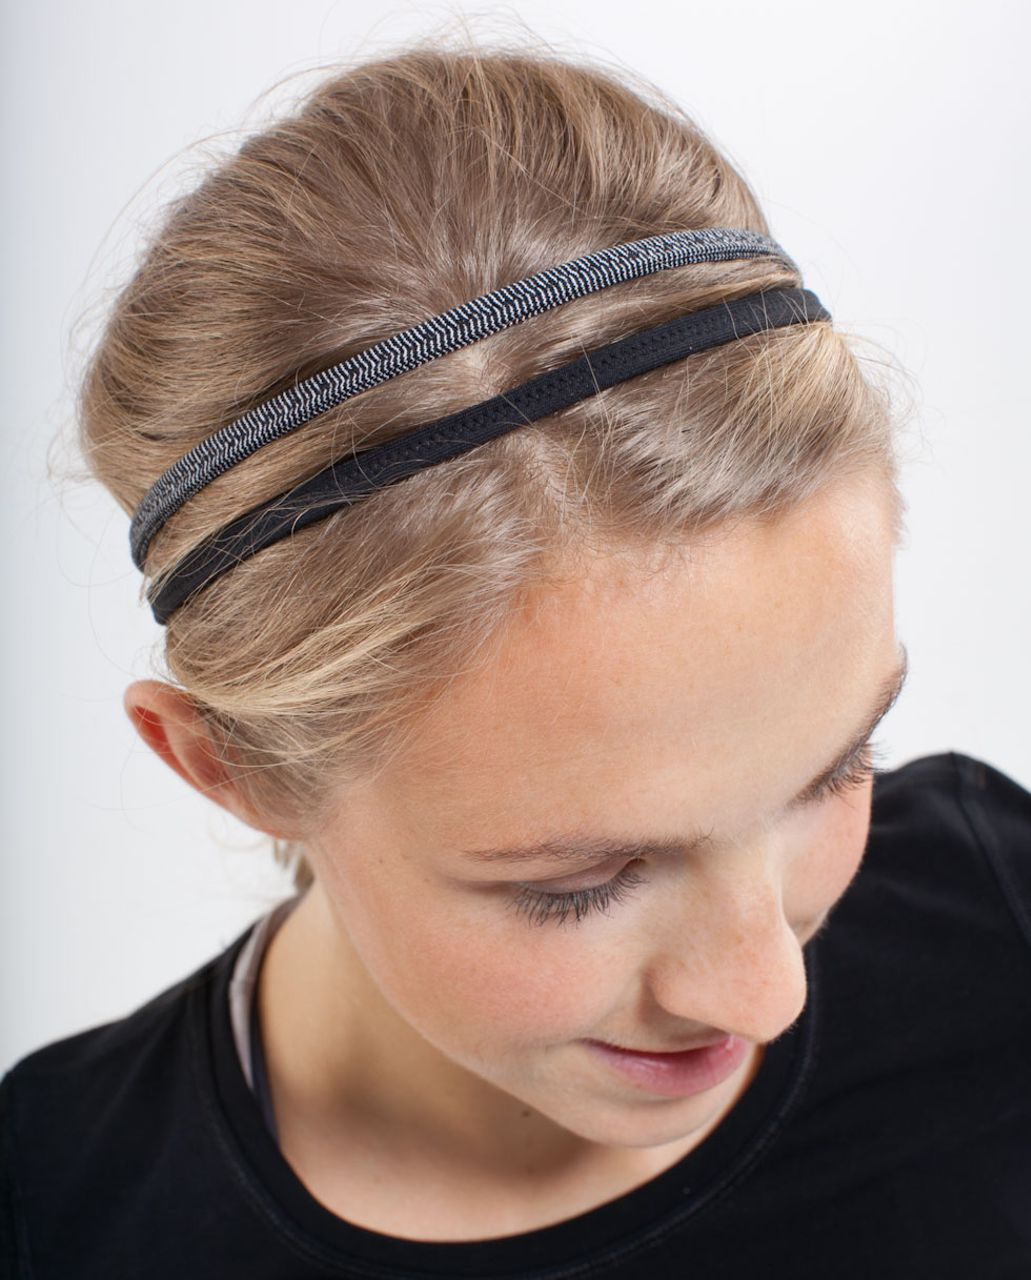 Lululemon DANCE! Headband - White Black Microstripe /  Black